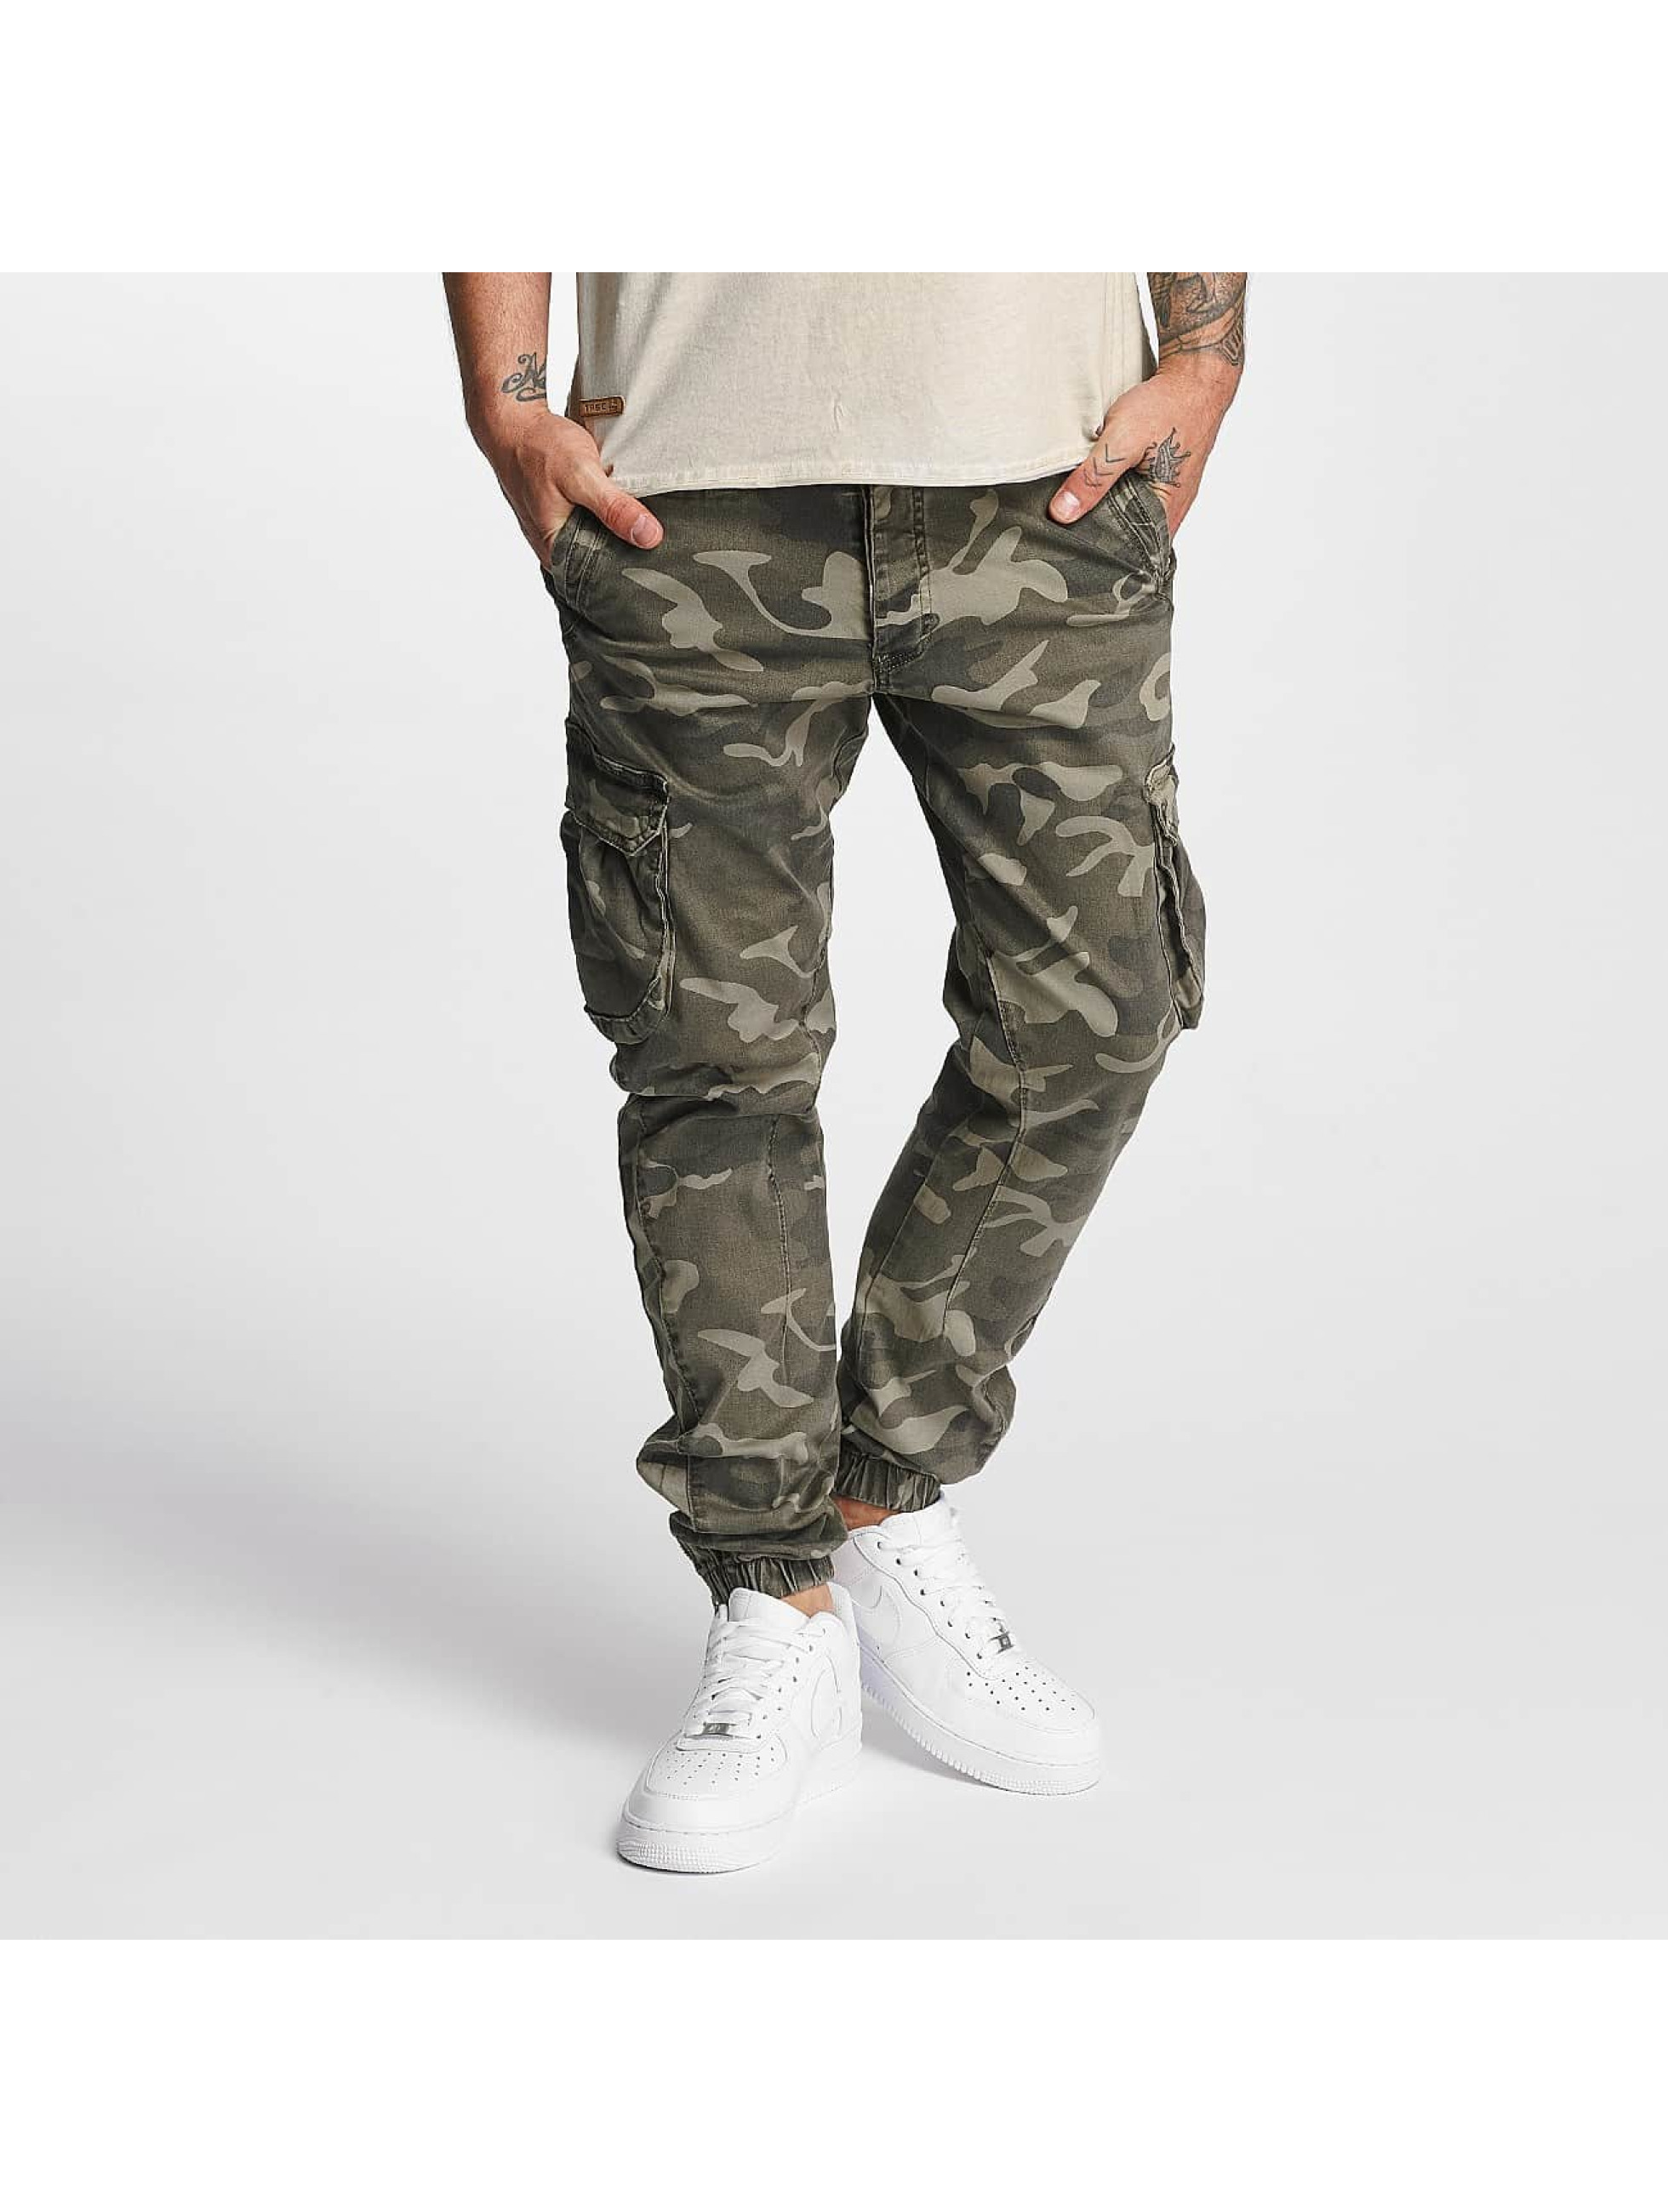 Red Bridge Cargo pants Army camouflage